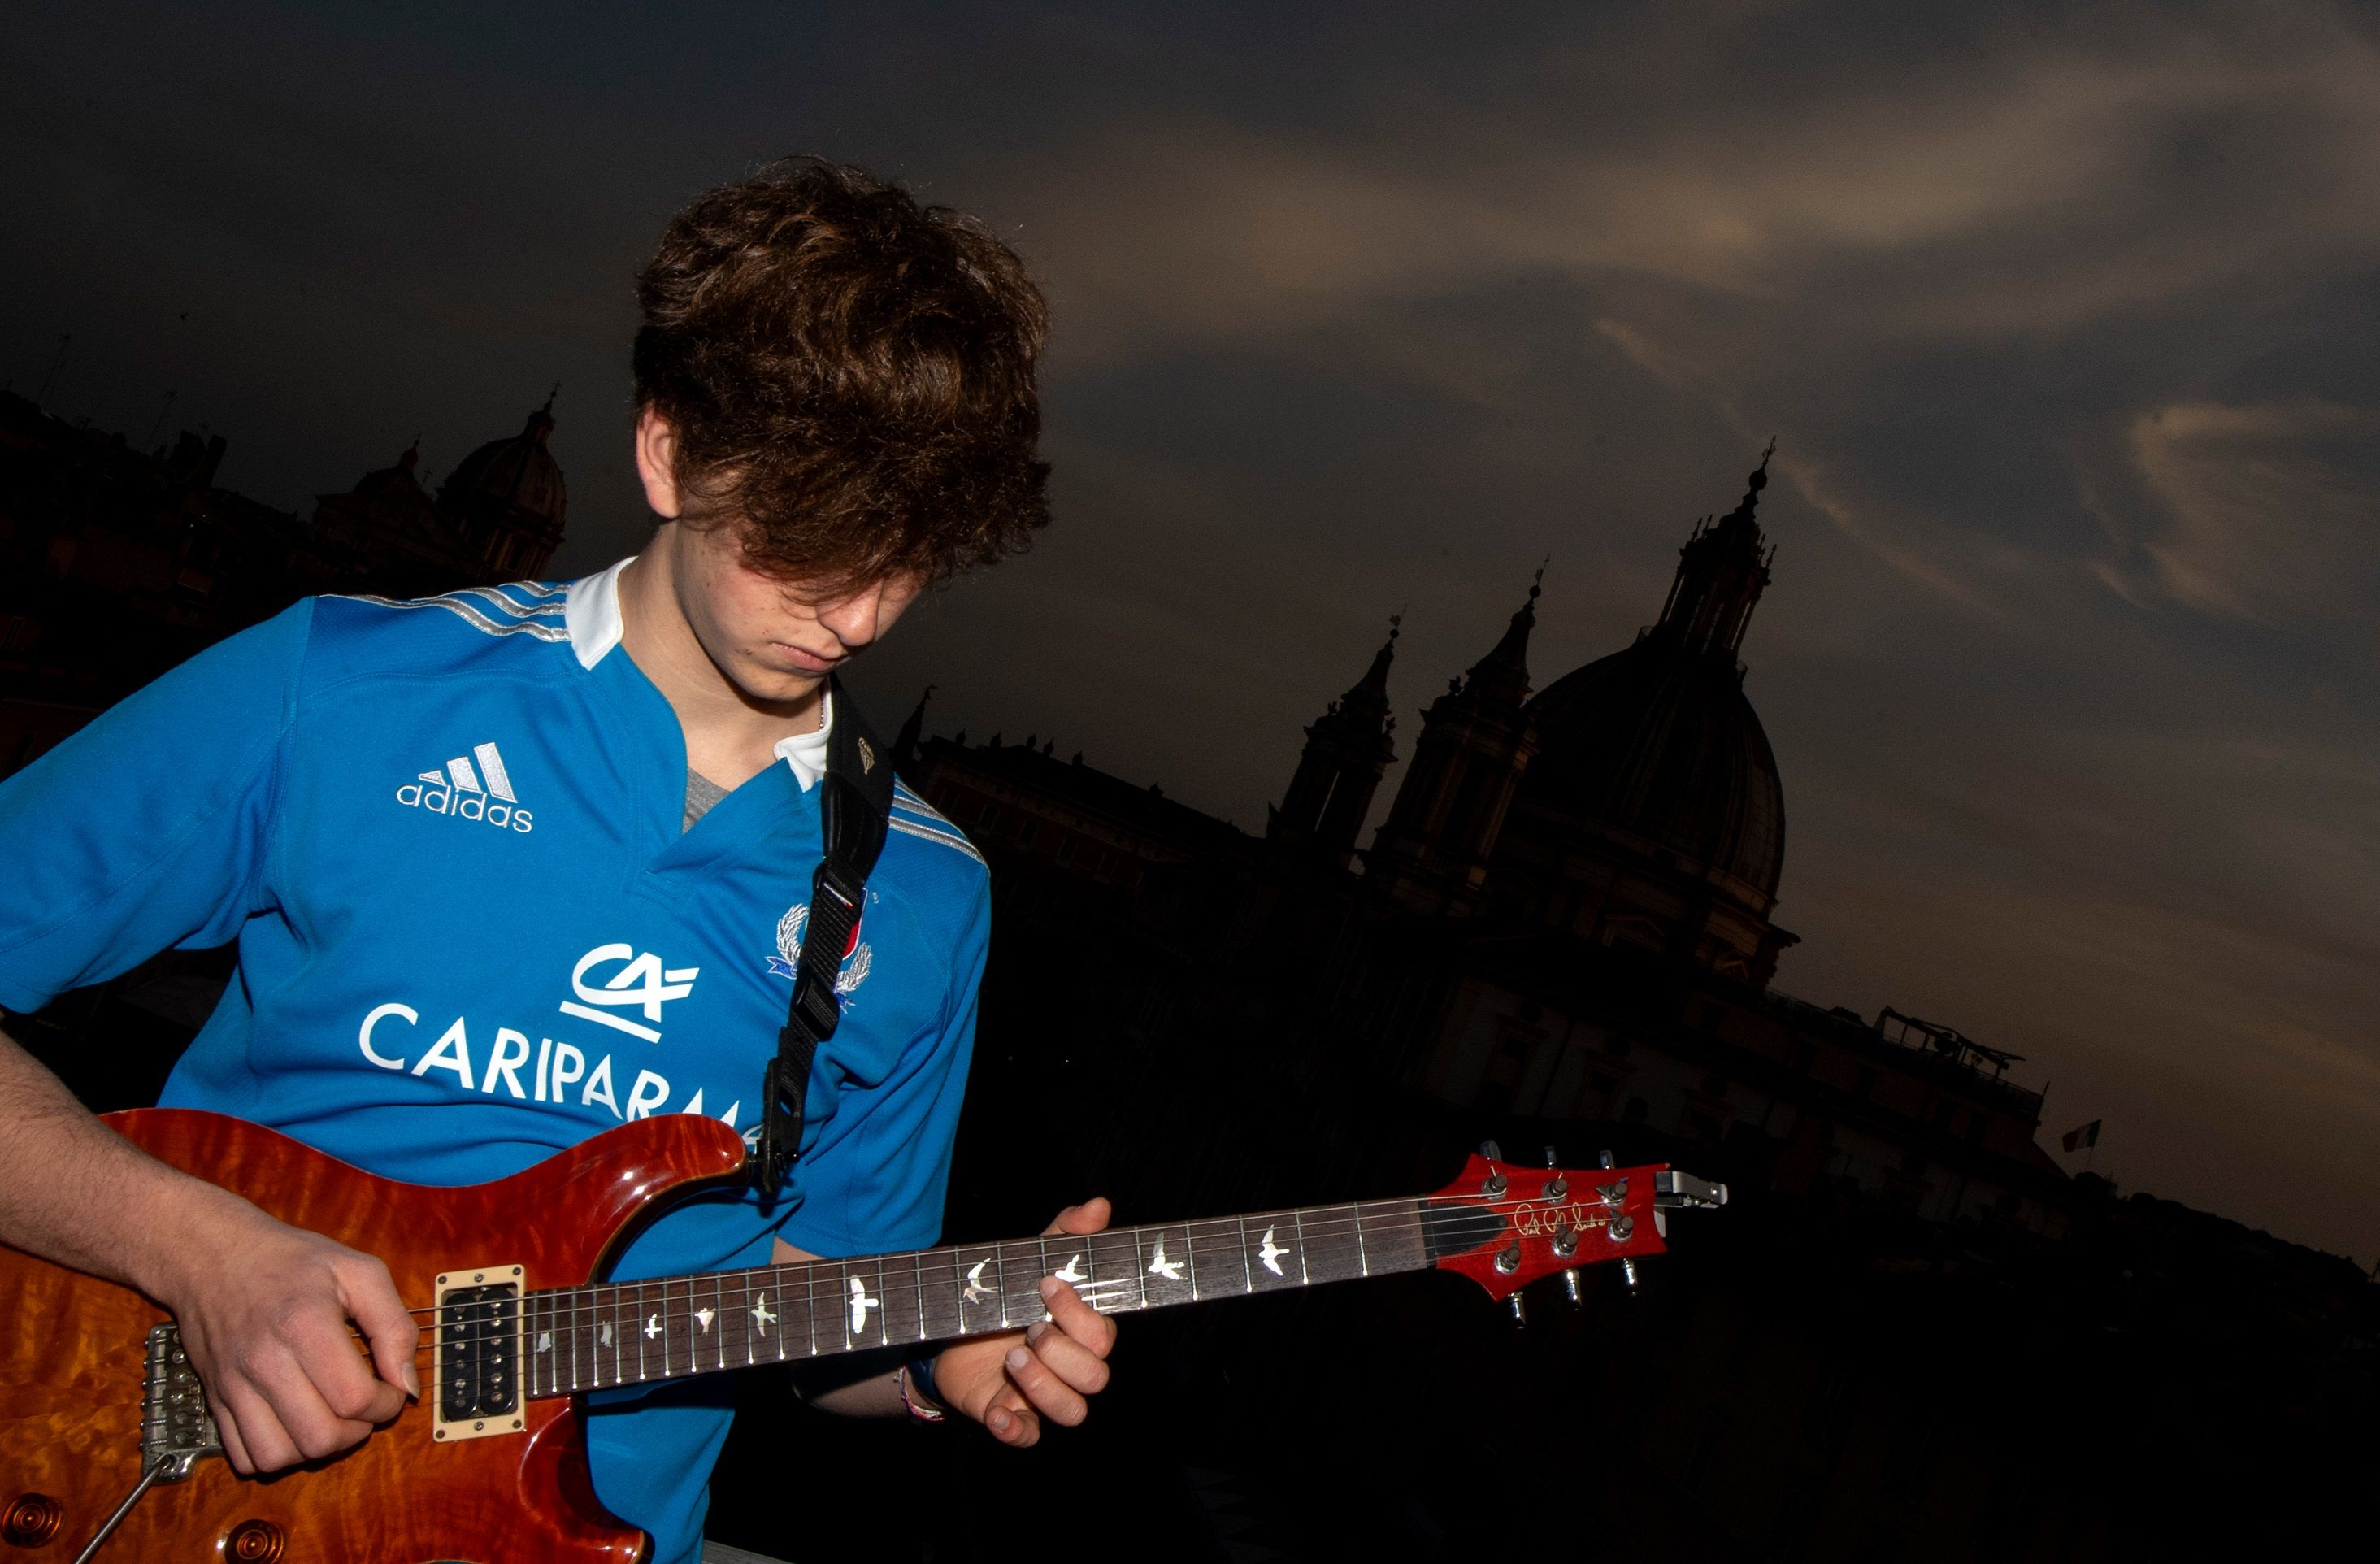 Young guitarist enchants locked down Rome